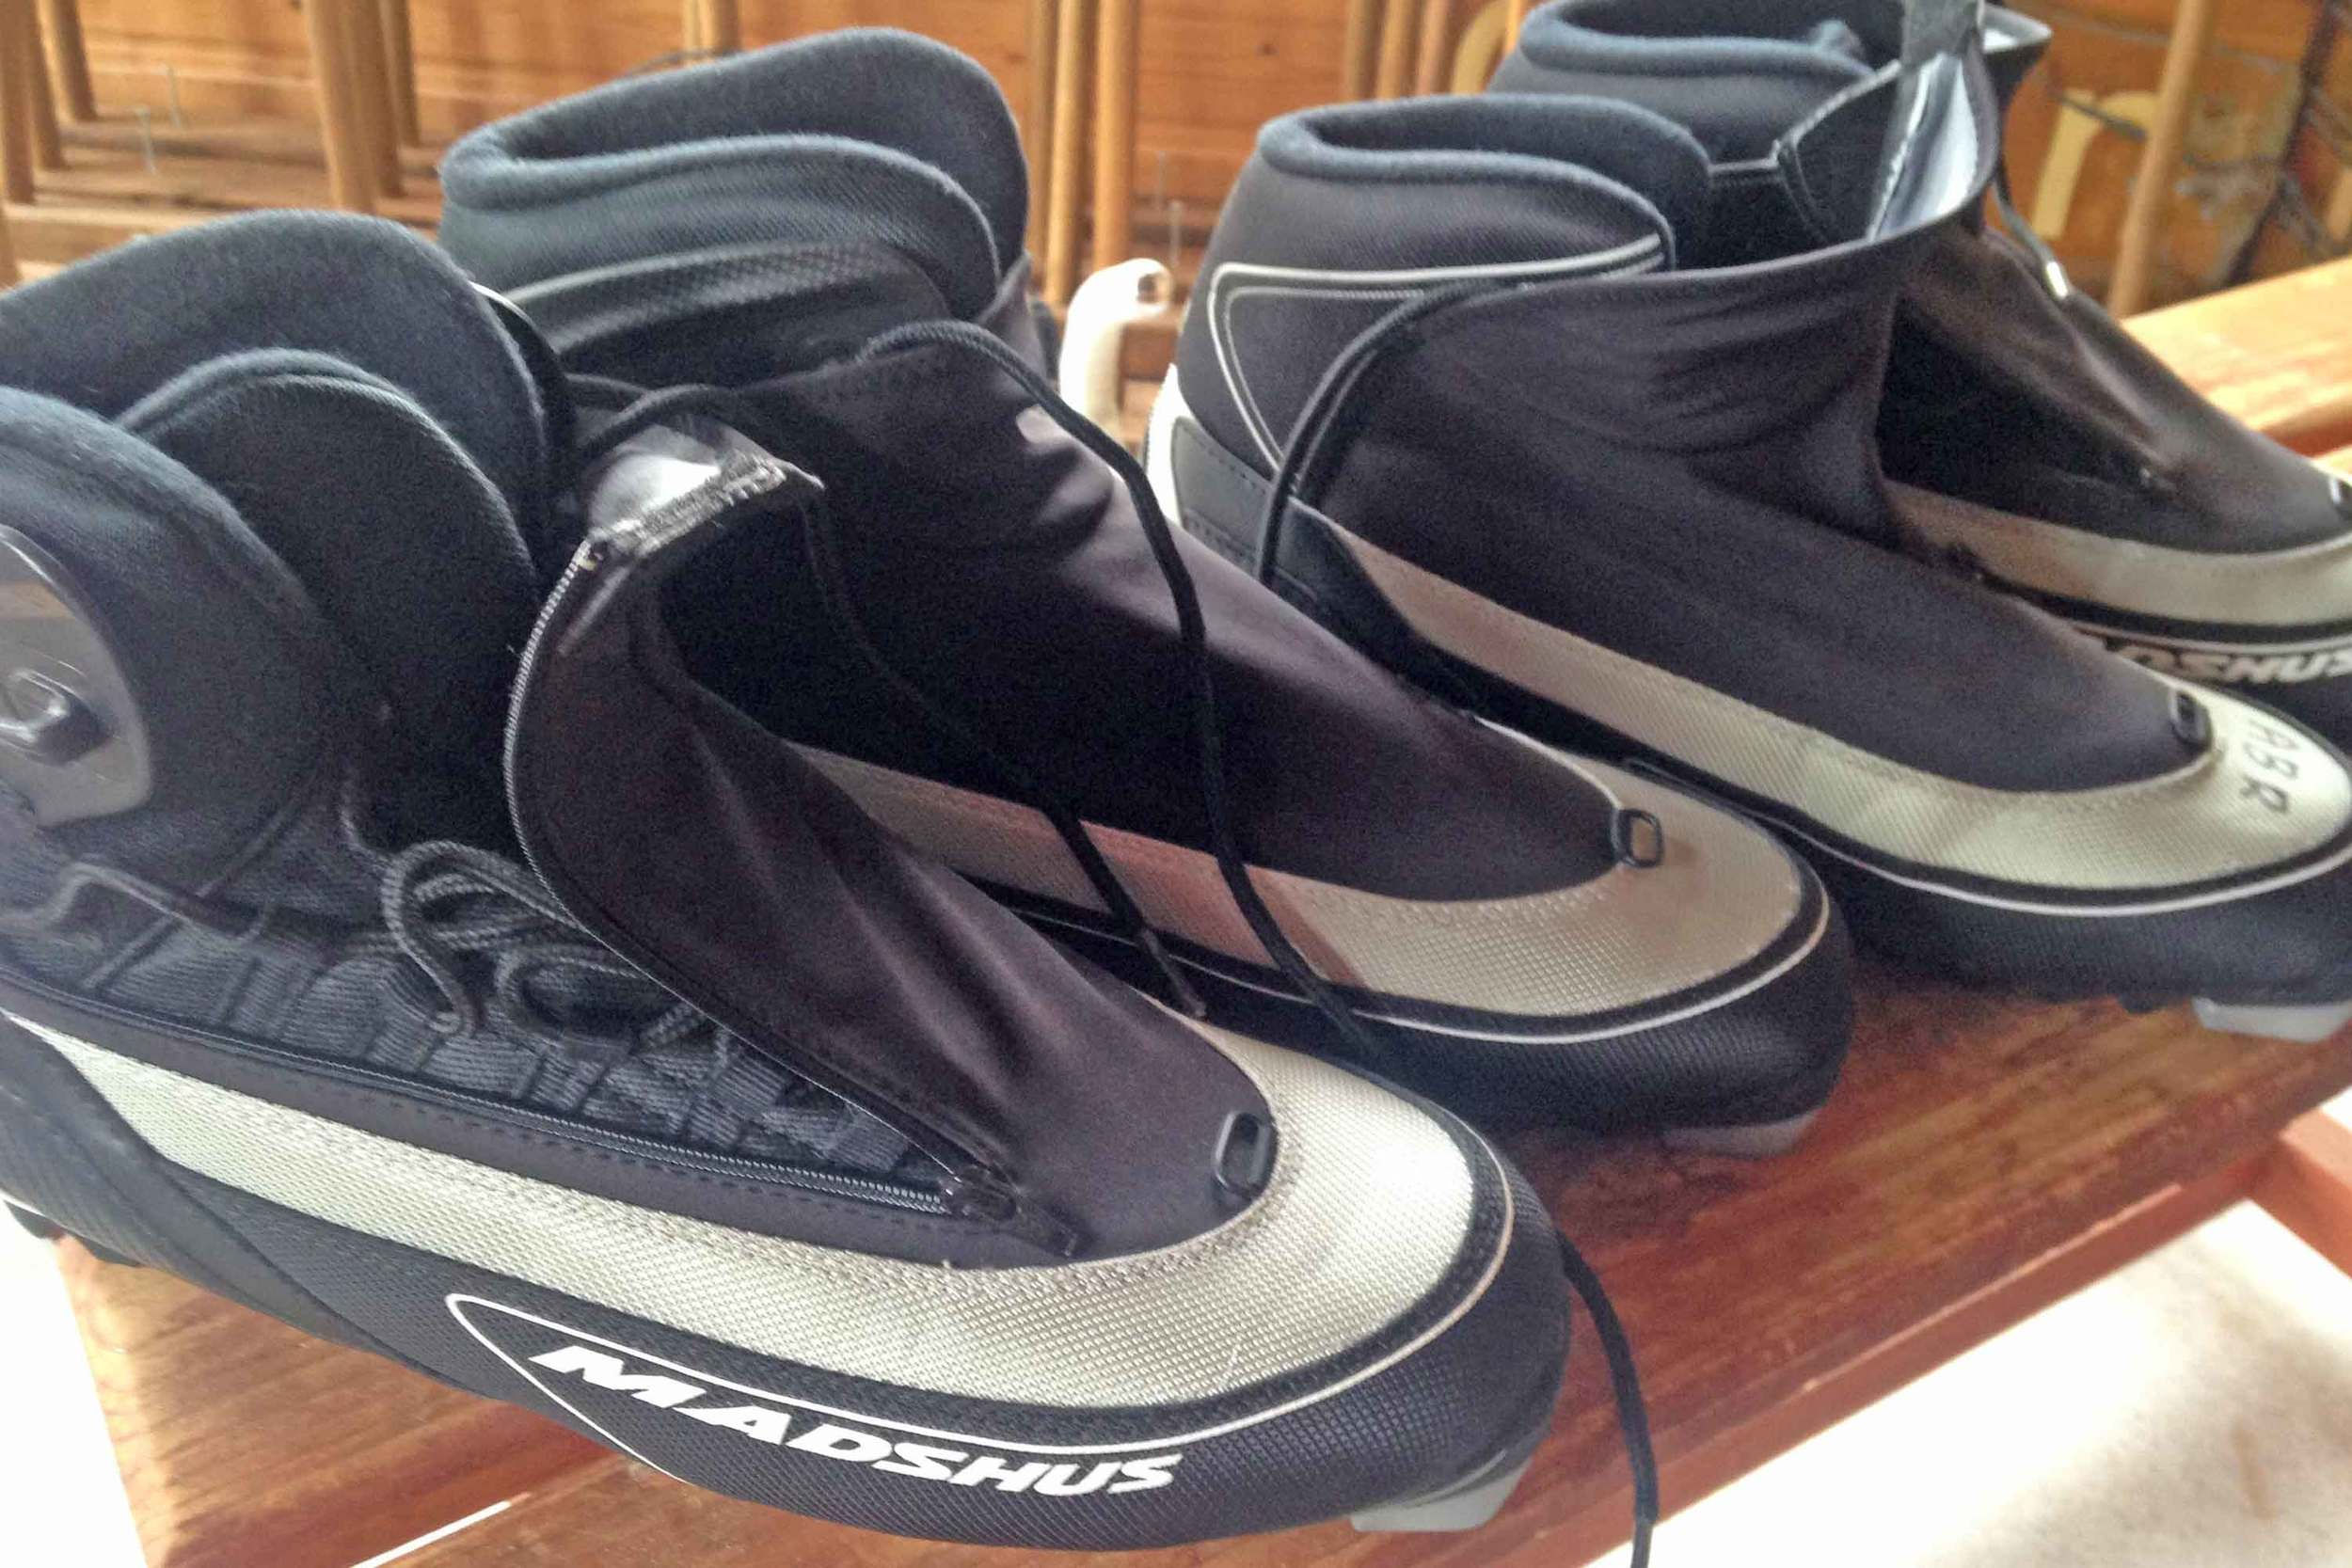 Madschus Nordic Boots